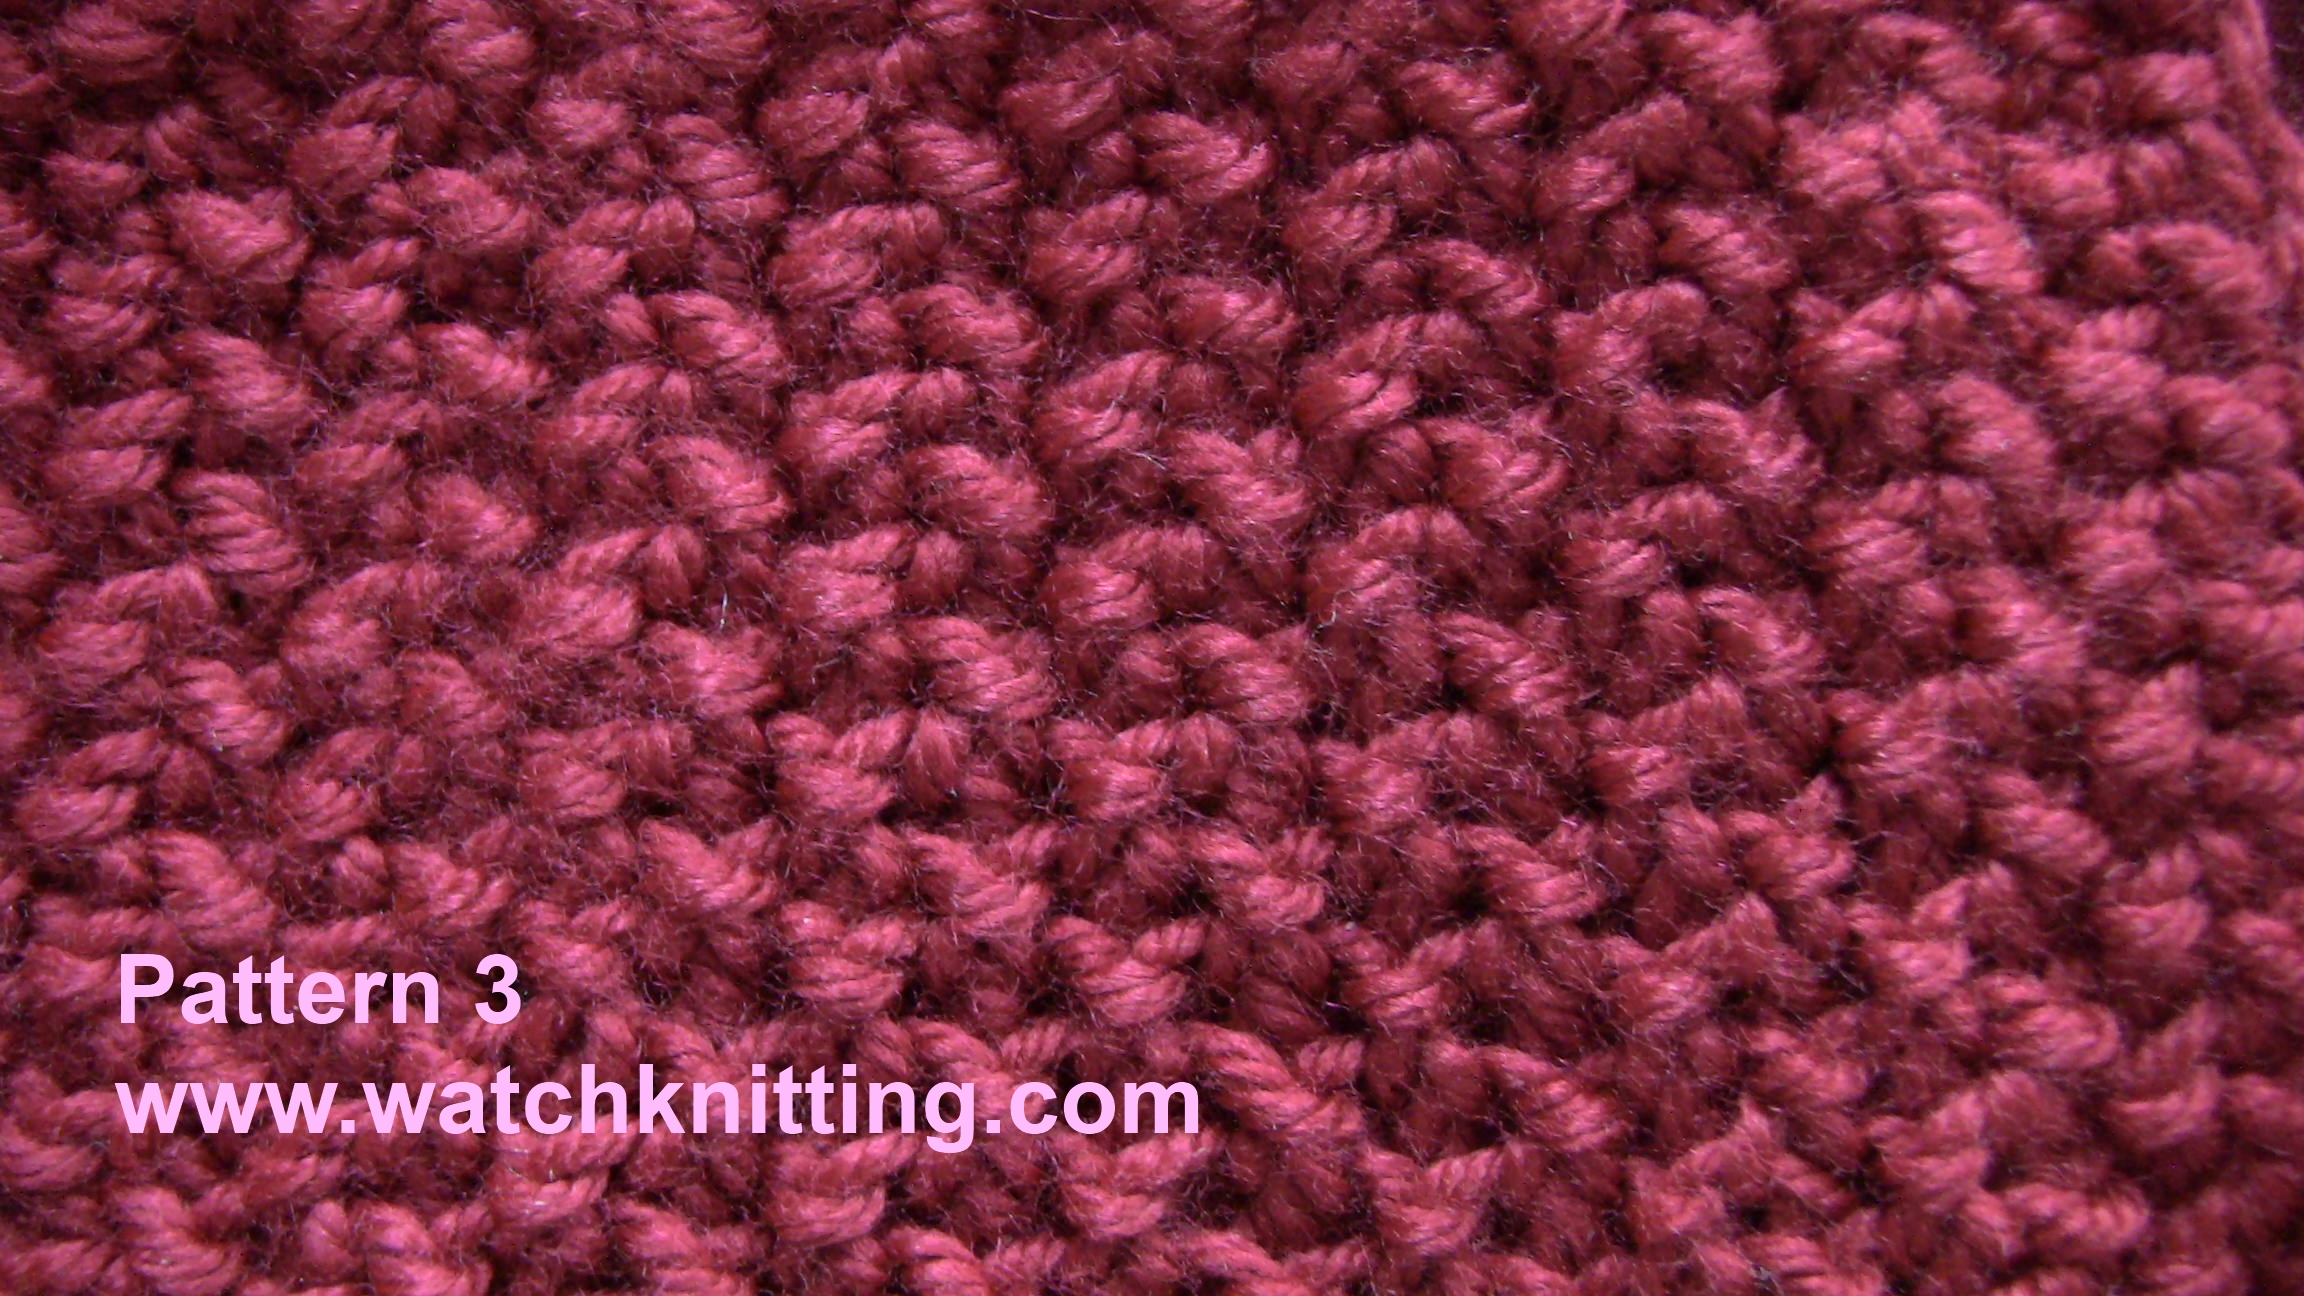 Simple Knitting Patterns : Pattern 3-Simple Knitting Patterns-www.watchknitting.com